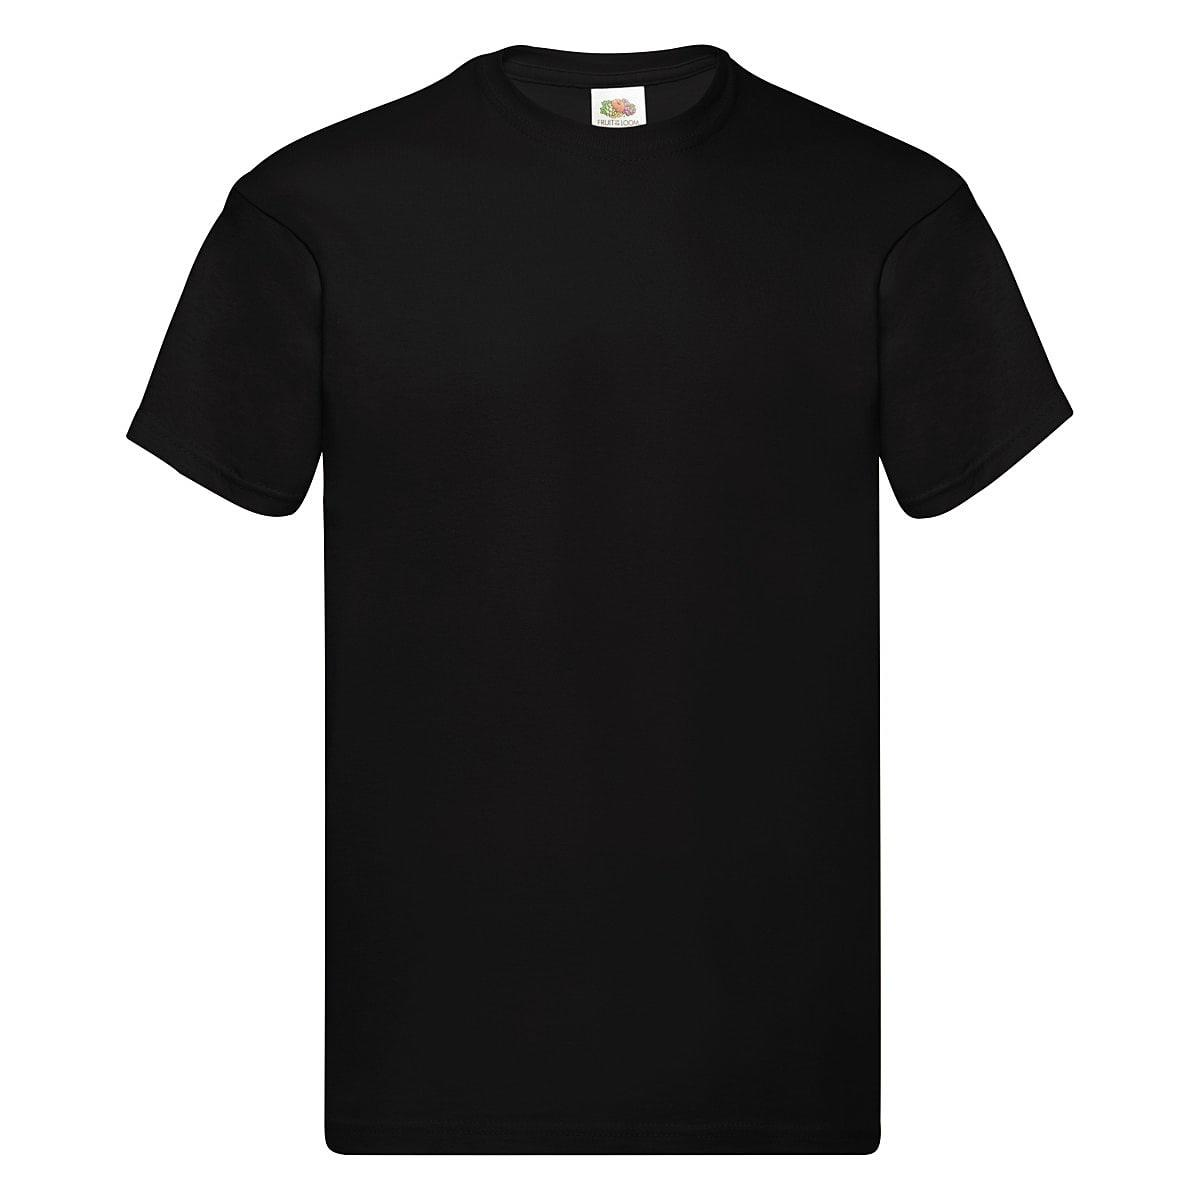 Fruit Of The Loom Original Full Cut T-Shirt in Black (Product Code: 61082)